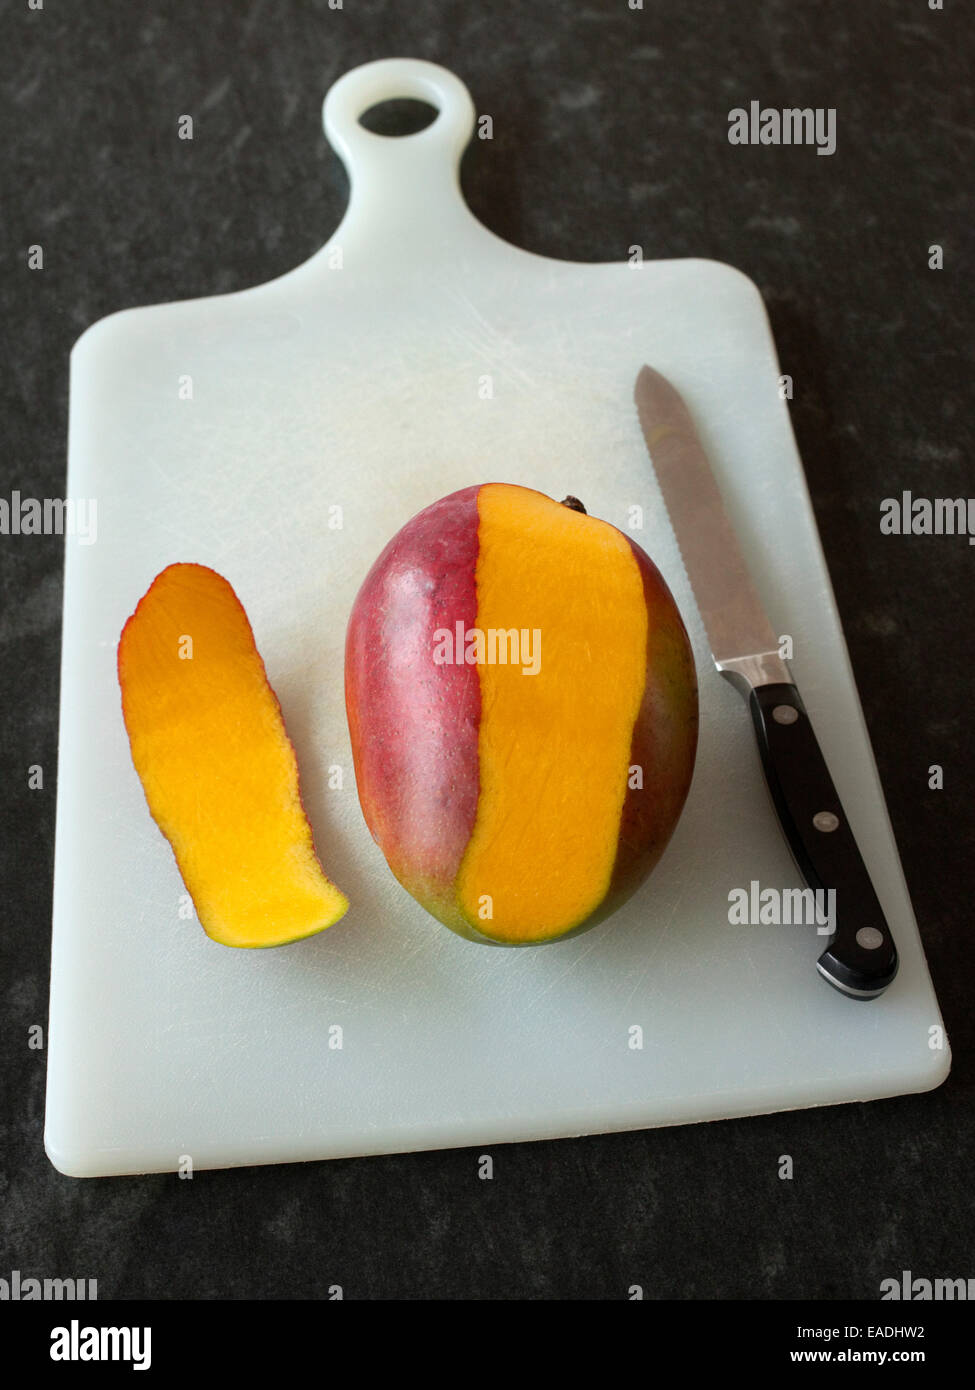 partially peeled mango and knife on cutting board - Stock Image